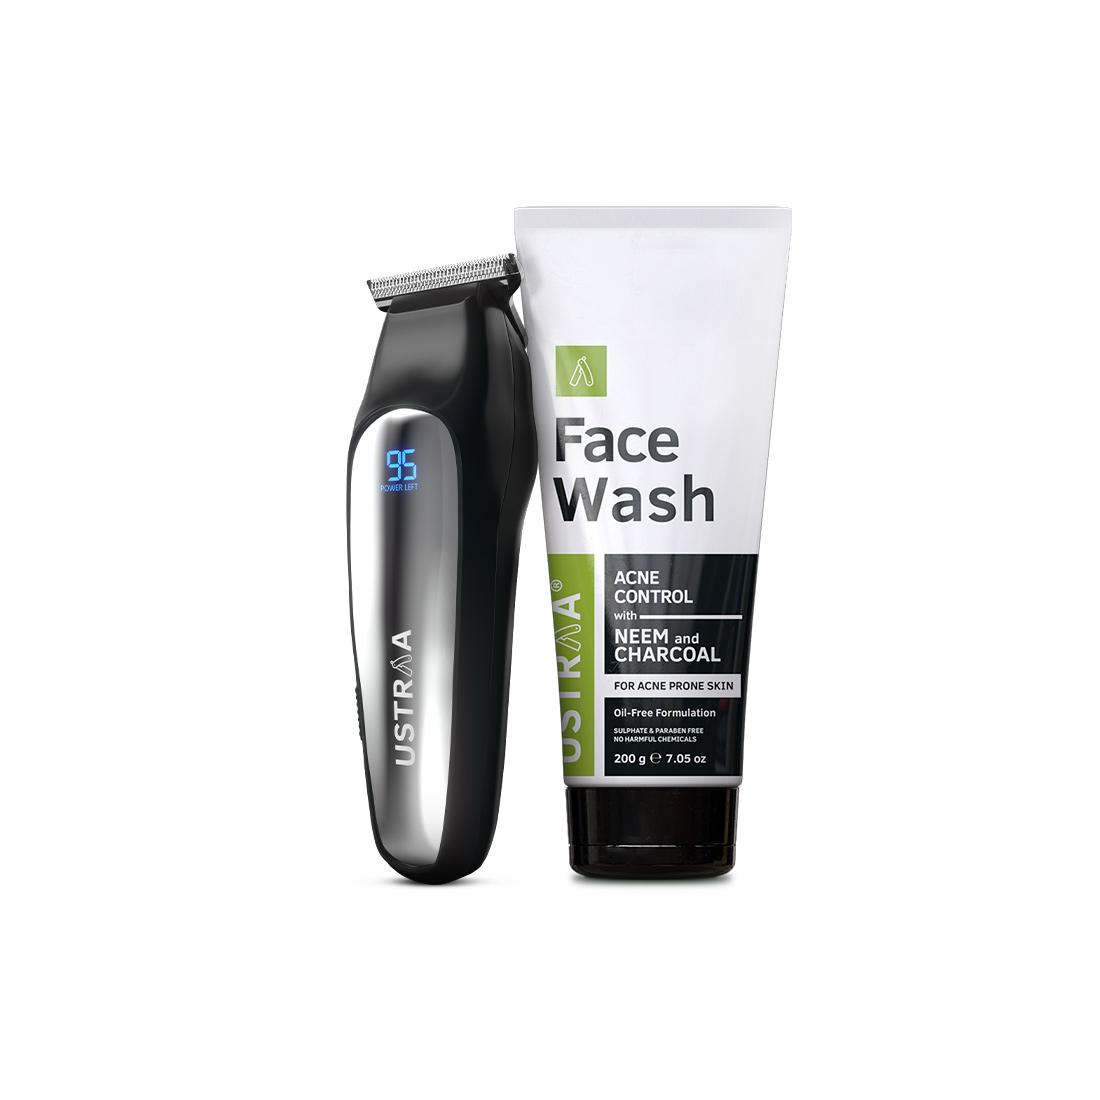 Ustraa Chrome - Lithium Powered Beard Trimmer and Face Wash